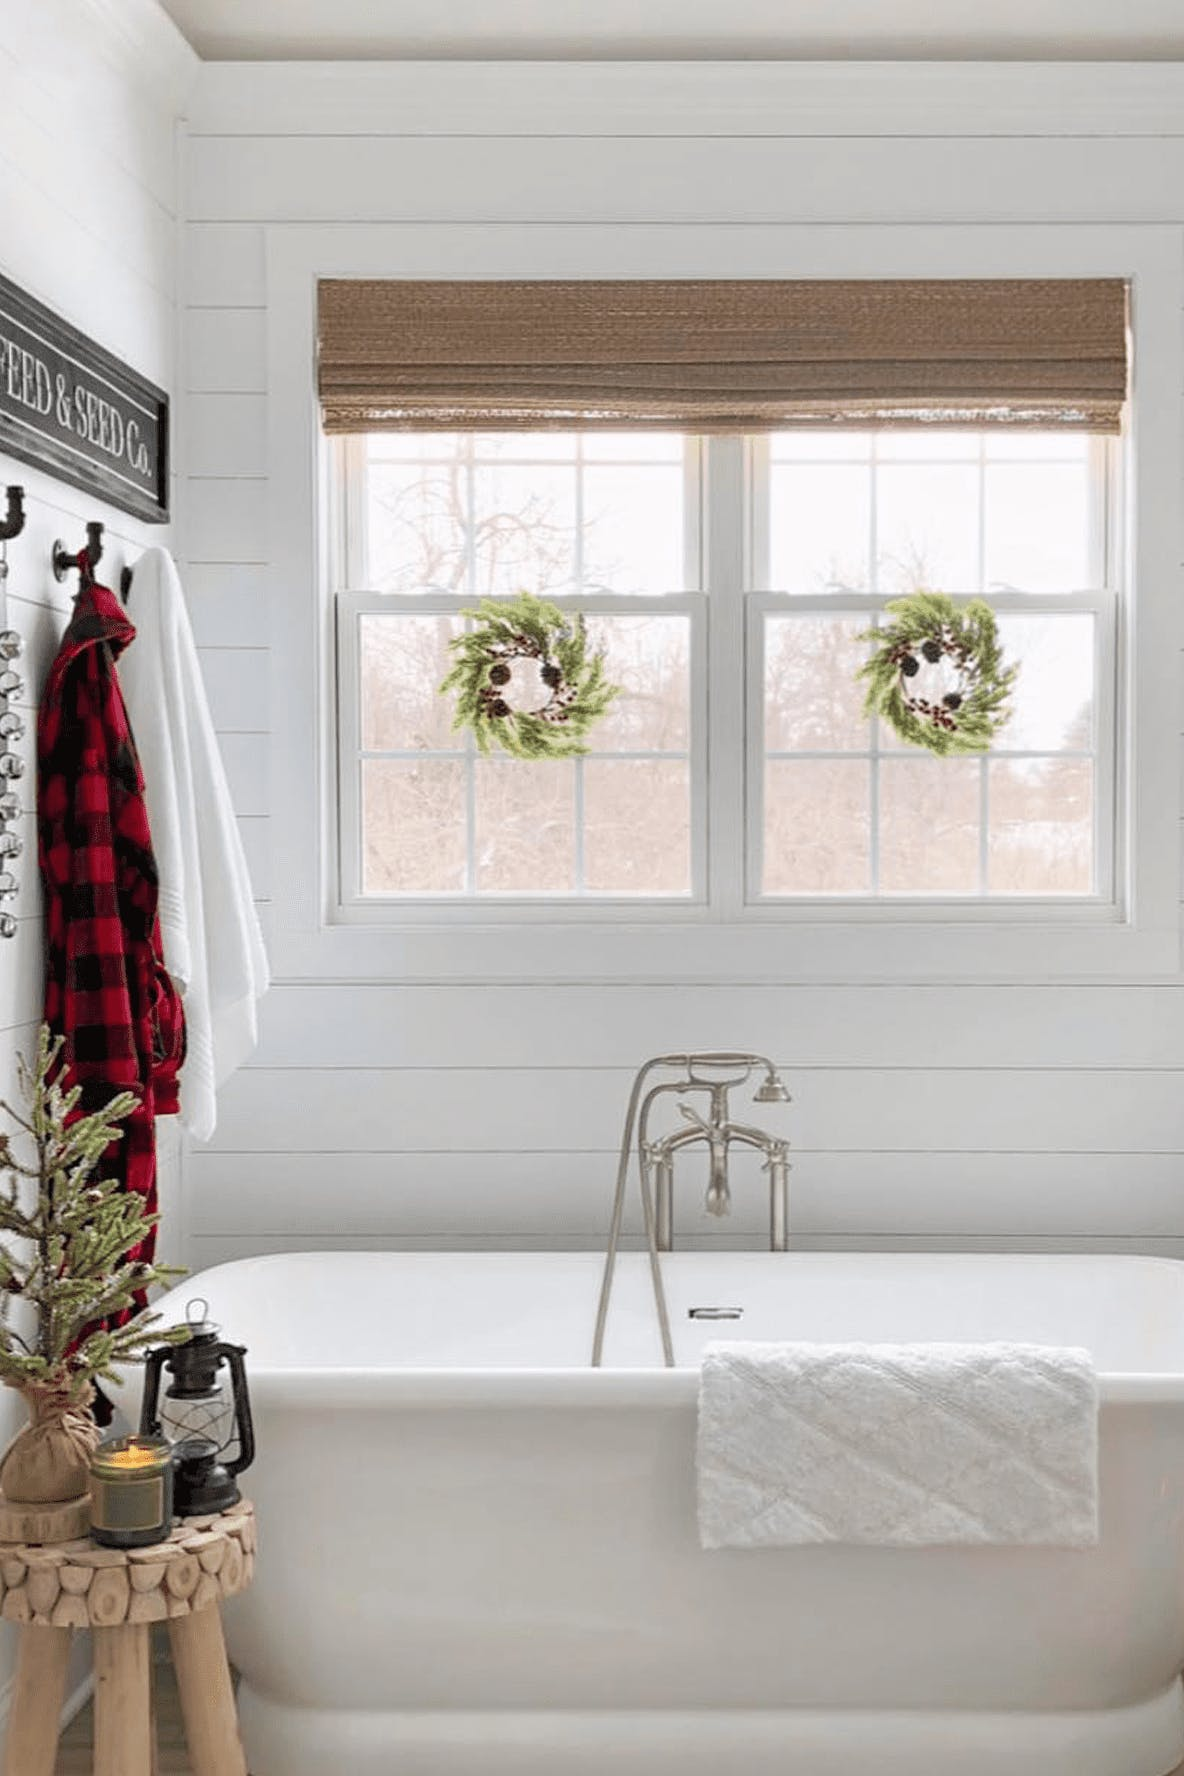 Bathroom window with woven wood shade and two holiday wreaths over the glass.